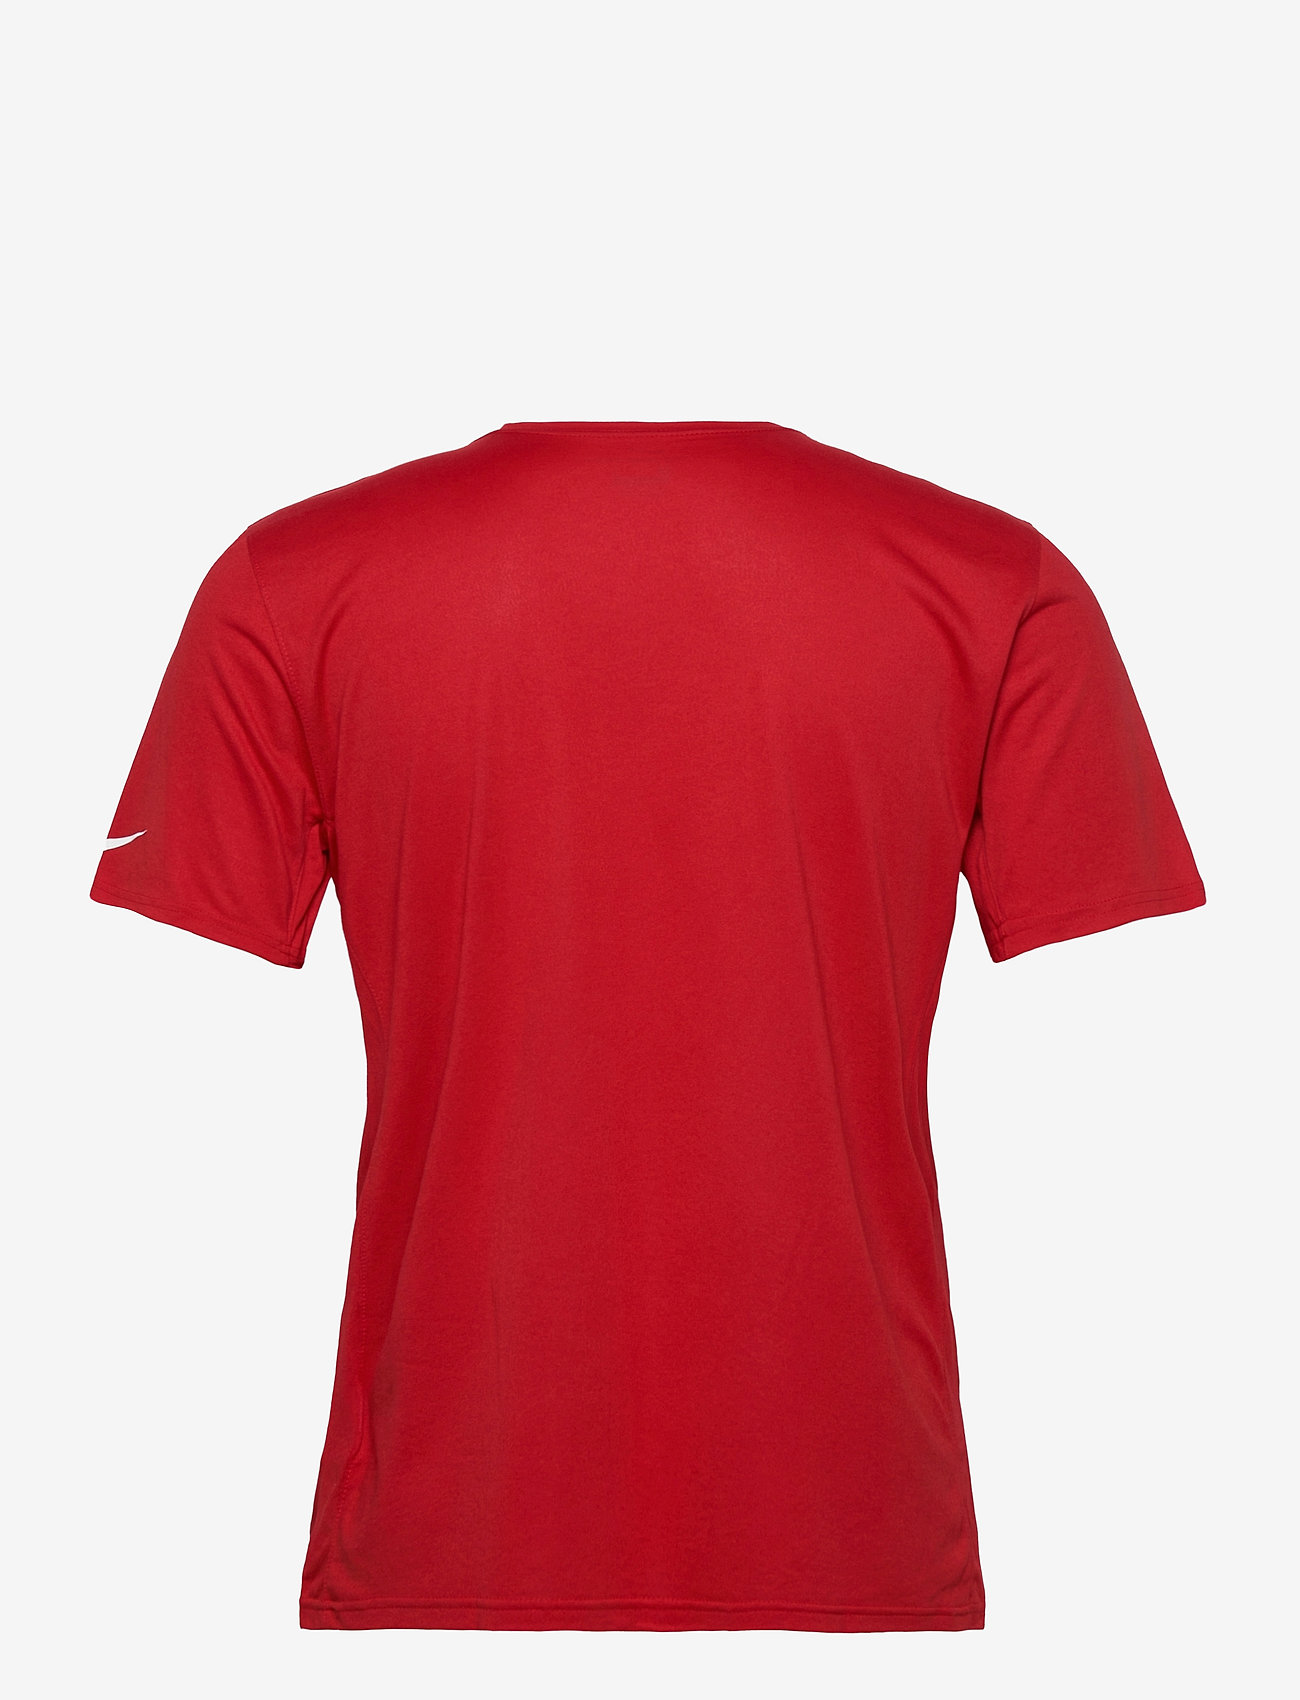 NIKE Fan Gear Tampa Bay Buccaneers Nike Icon Essential T-Shirt - T-skjorter GYM RED - Menn Klær